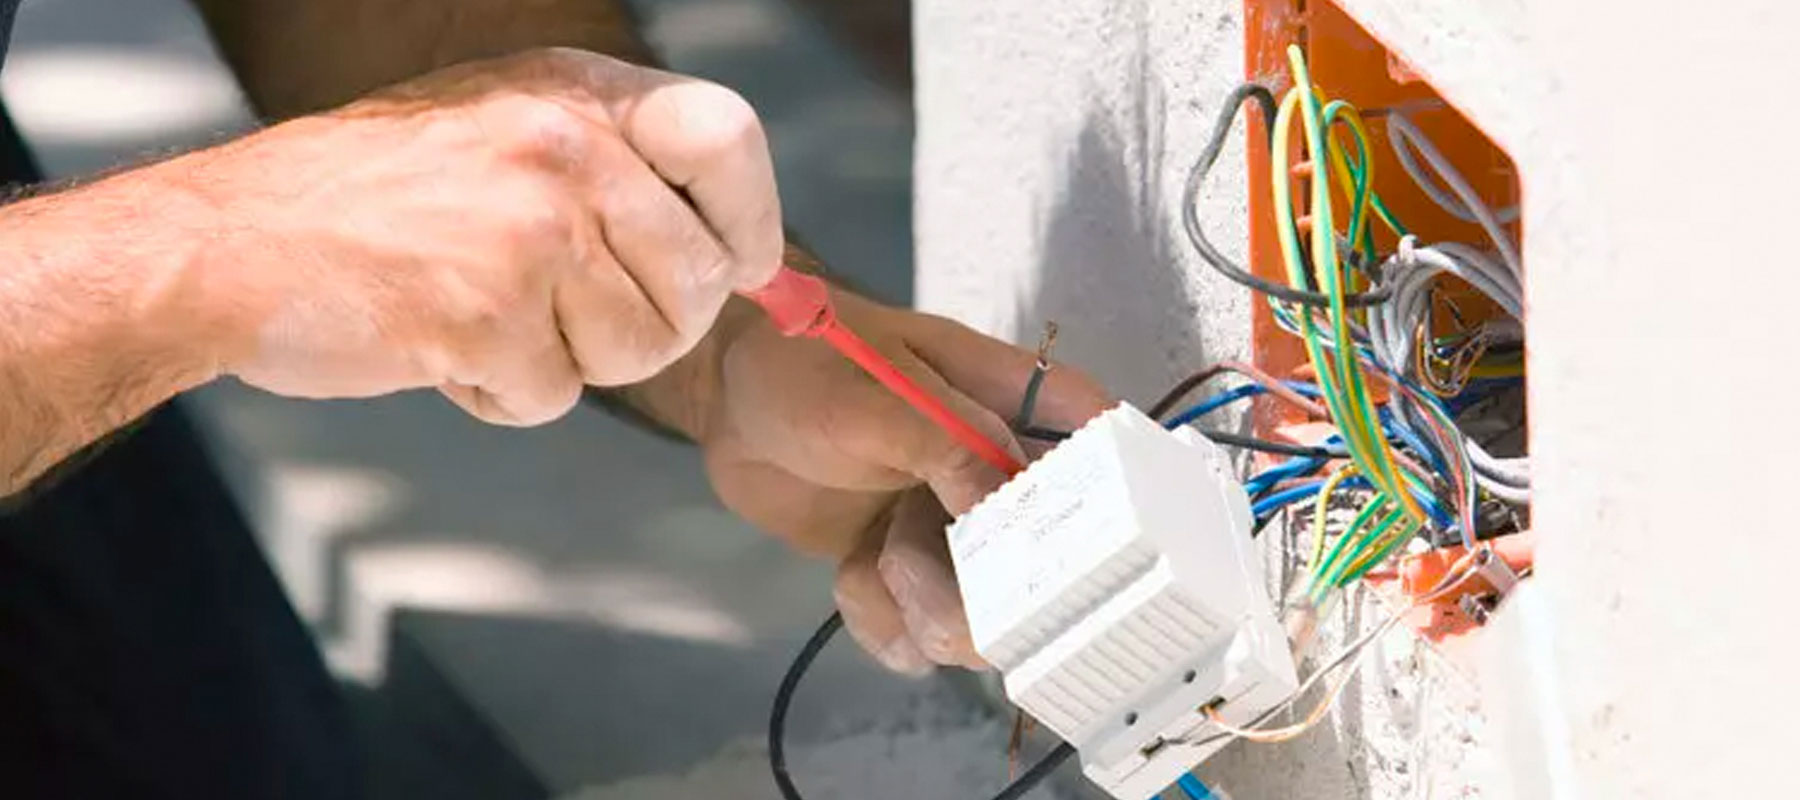 Residential Electrical Services Malibu | US Electrical